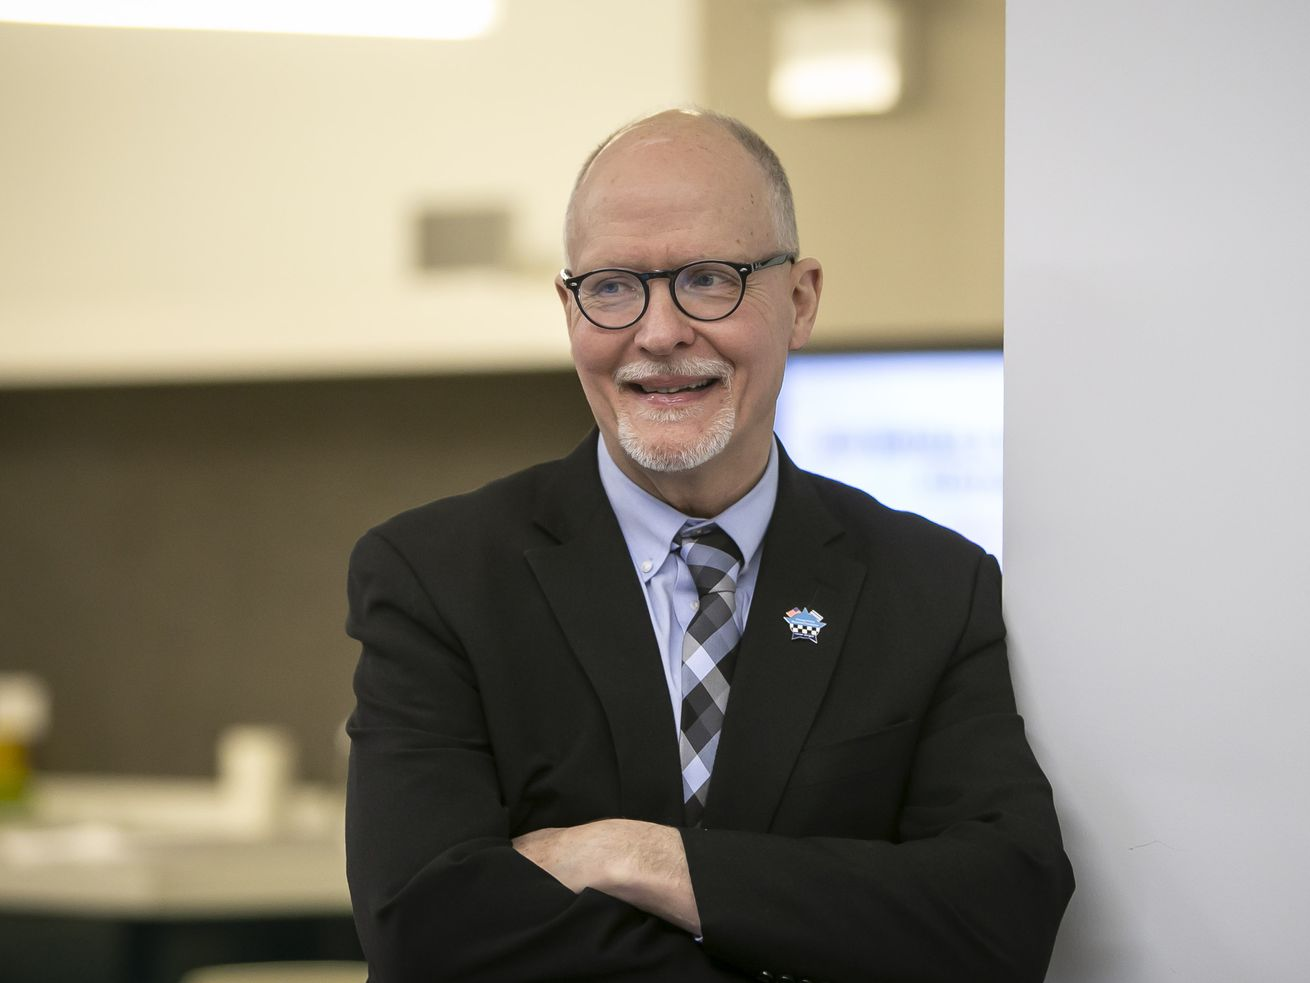 Mayoral candidate Paul Vallas at the Sun-Times on election night, Tuesday, February 26, 2019.